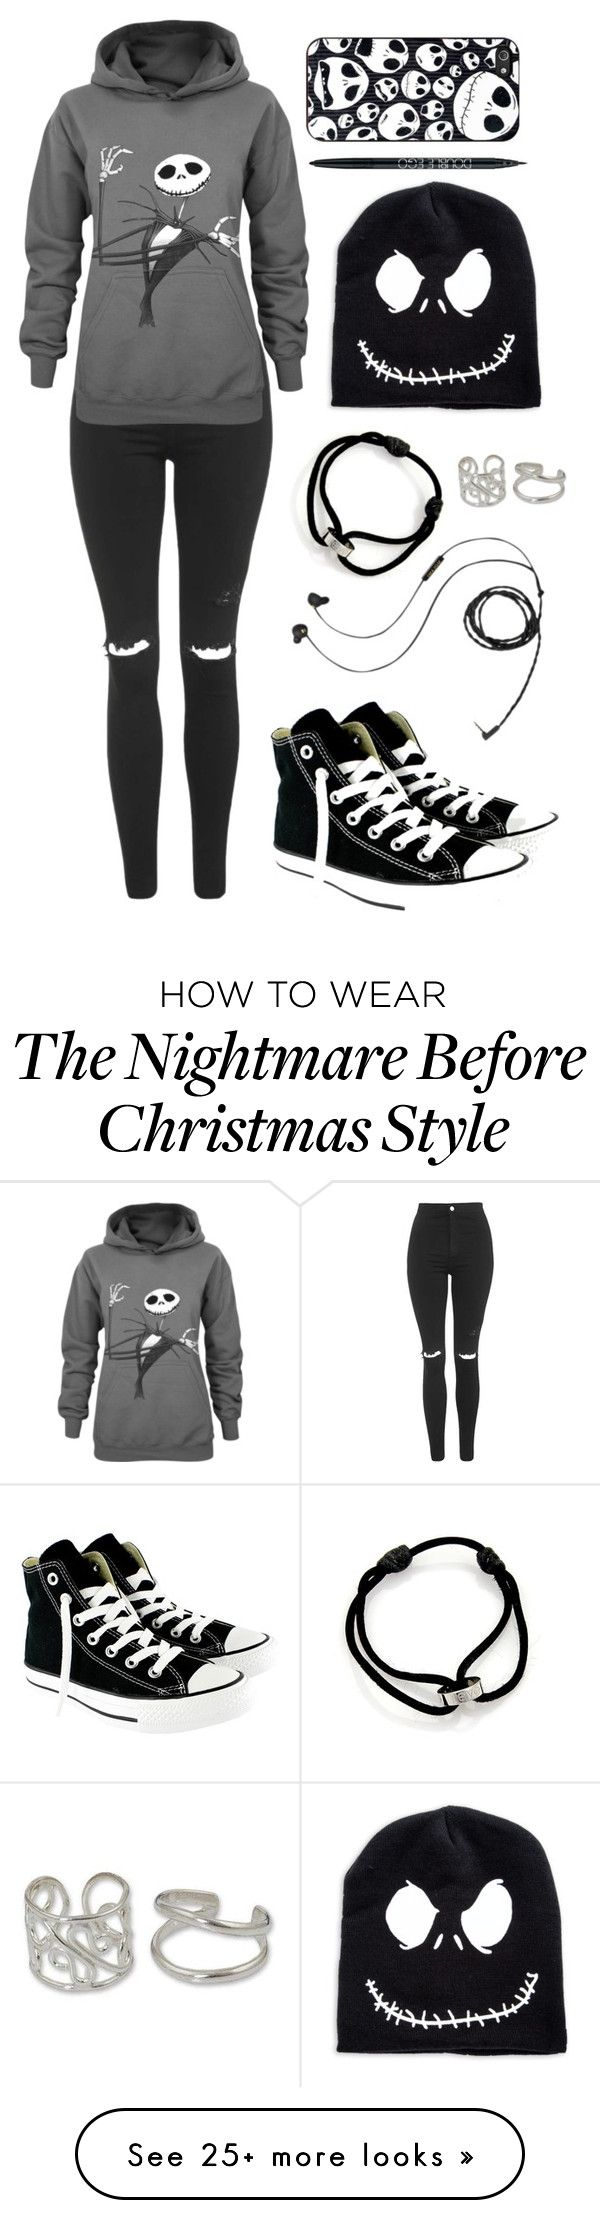 """Untitled #2777"" by picky-picky on Polyvore featuring Cartier, Topshop, Converse, PurMinerals, Molami and NOVICA"